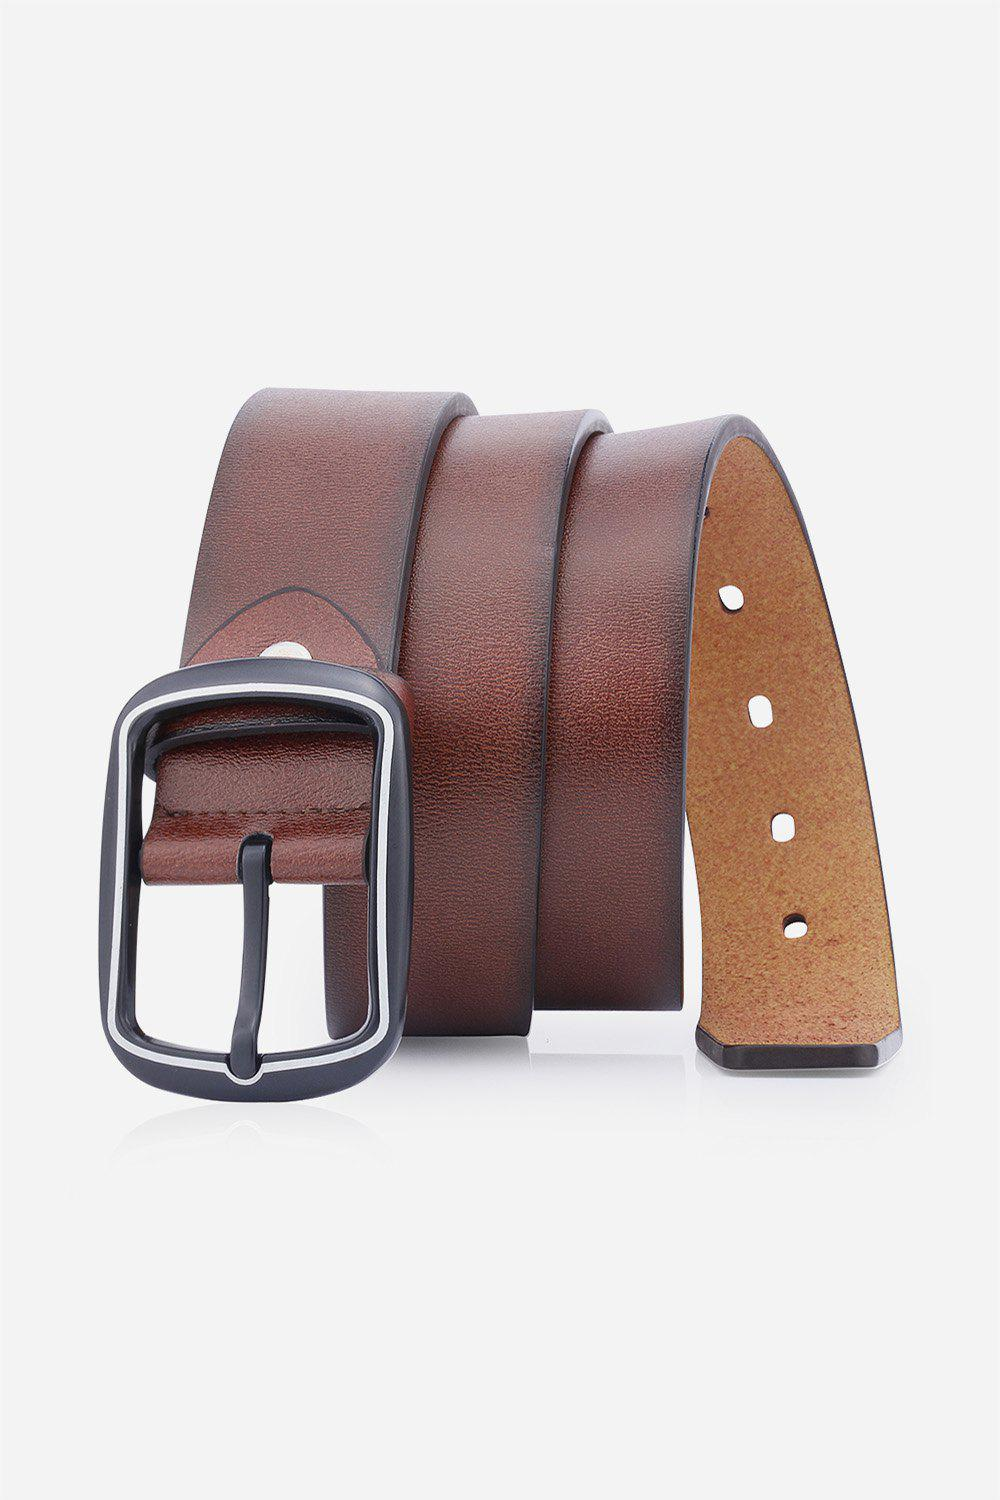 Artificial Leather Rectangular Pin Buckle Belt - BROWN